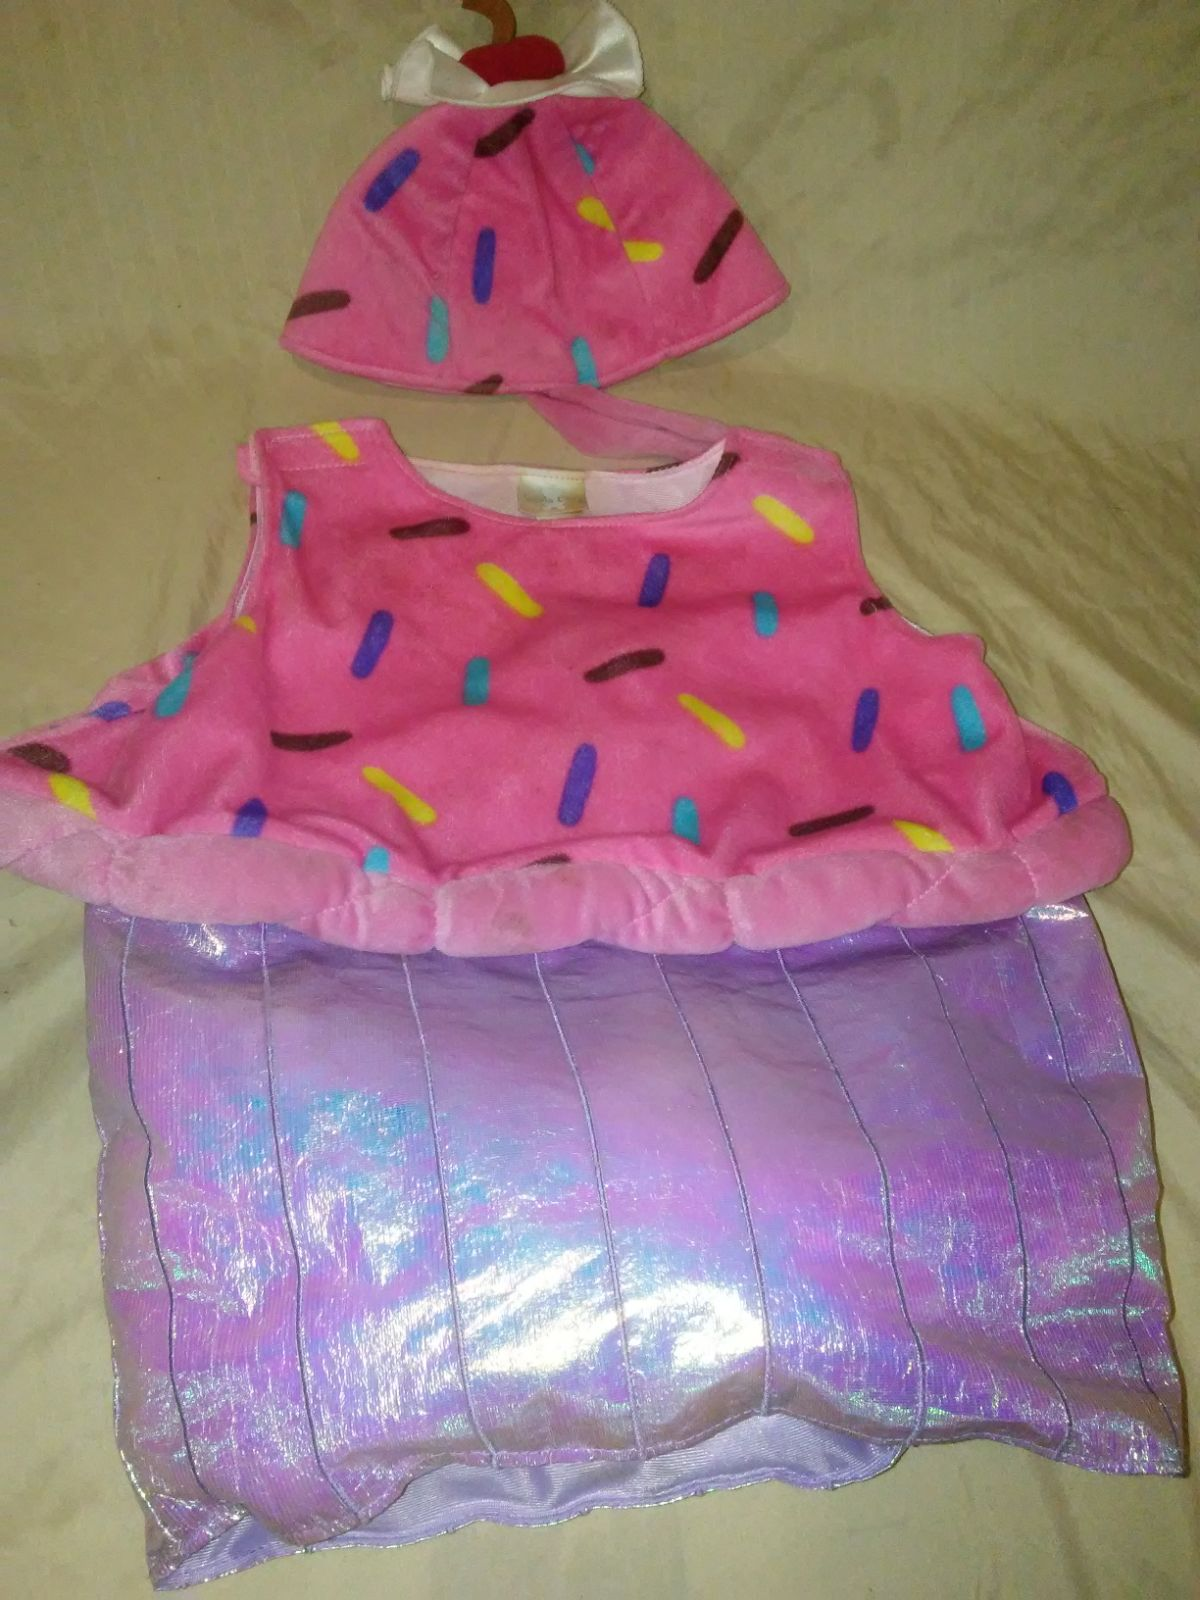 Toddler cup cake costume 24 months